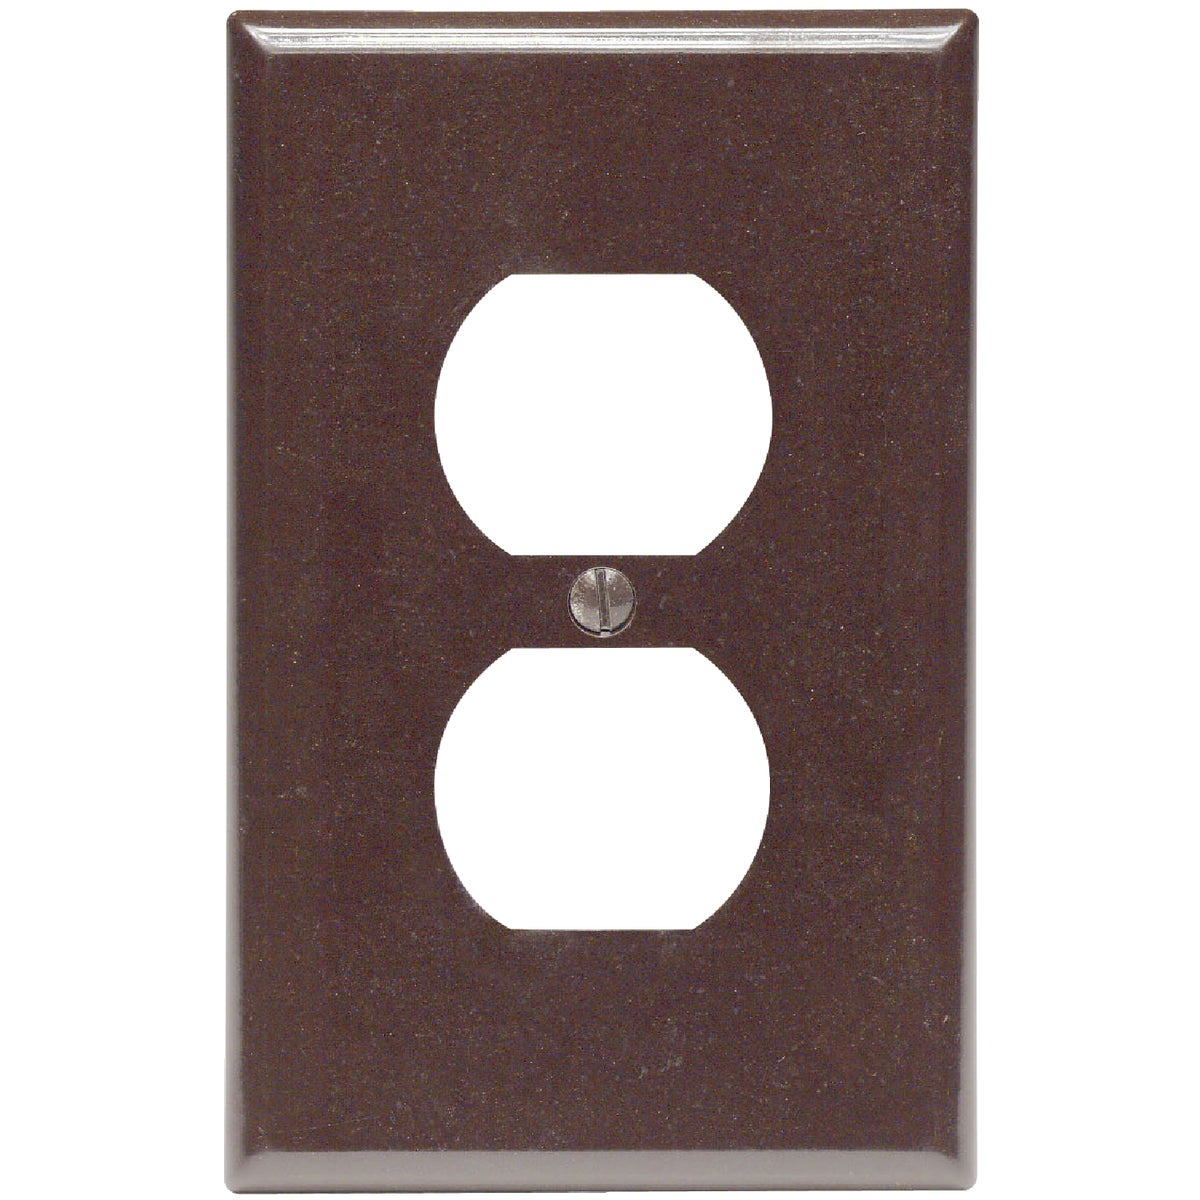 BRN OUTLET WALL PLATE